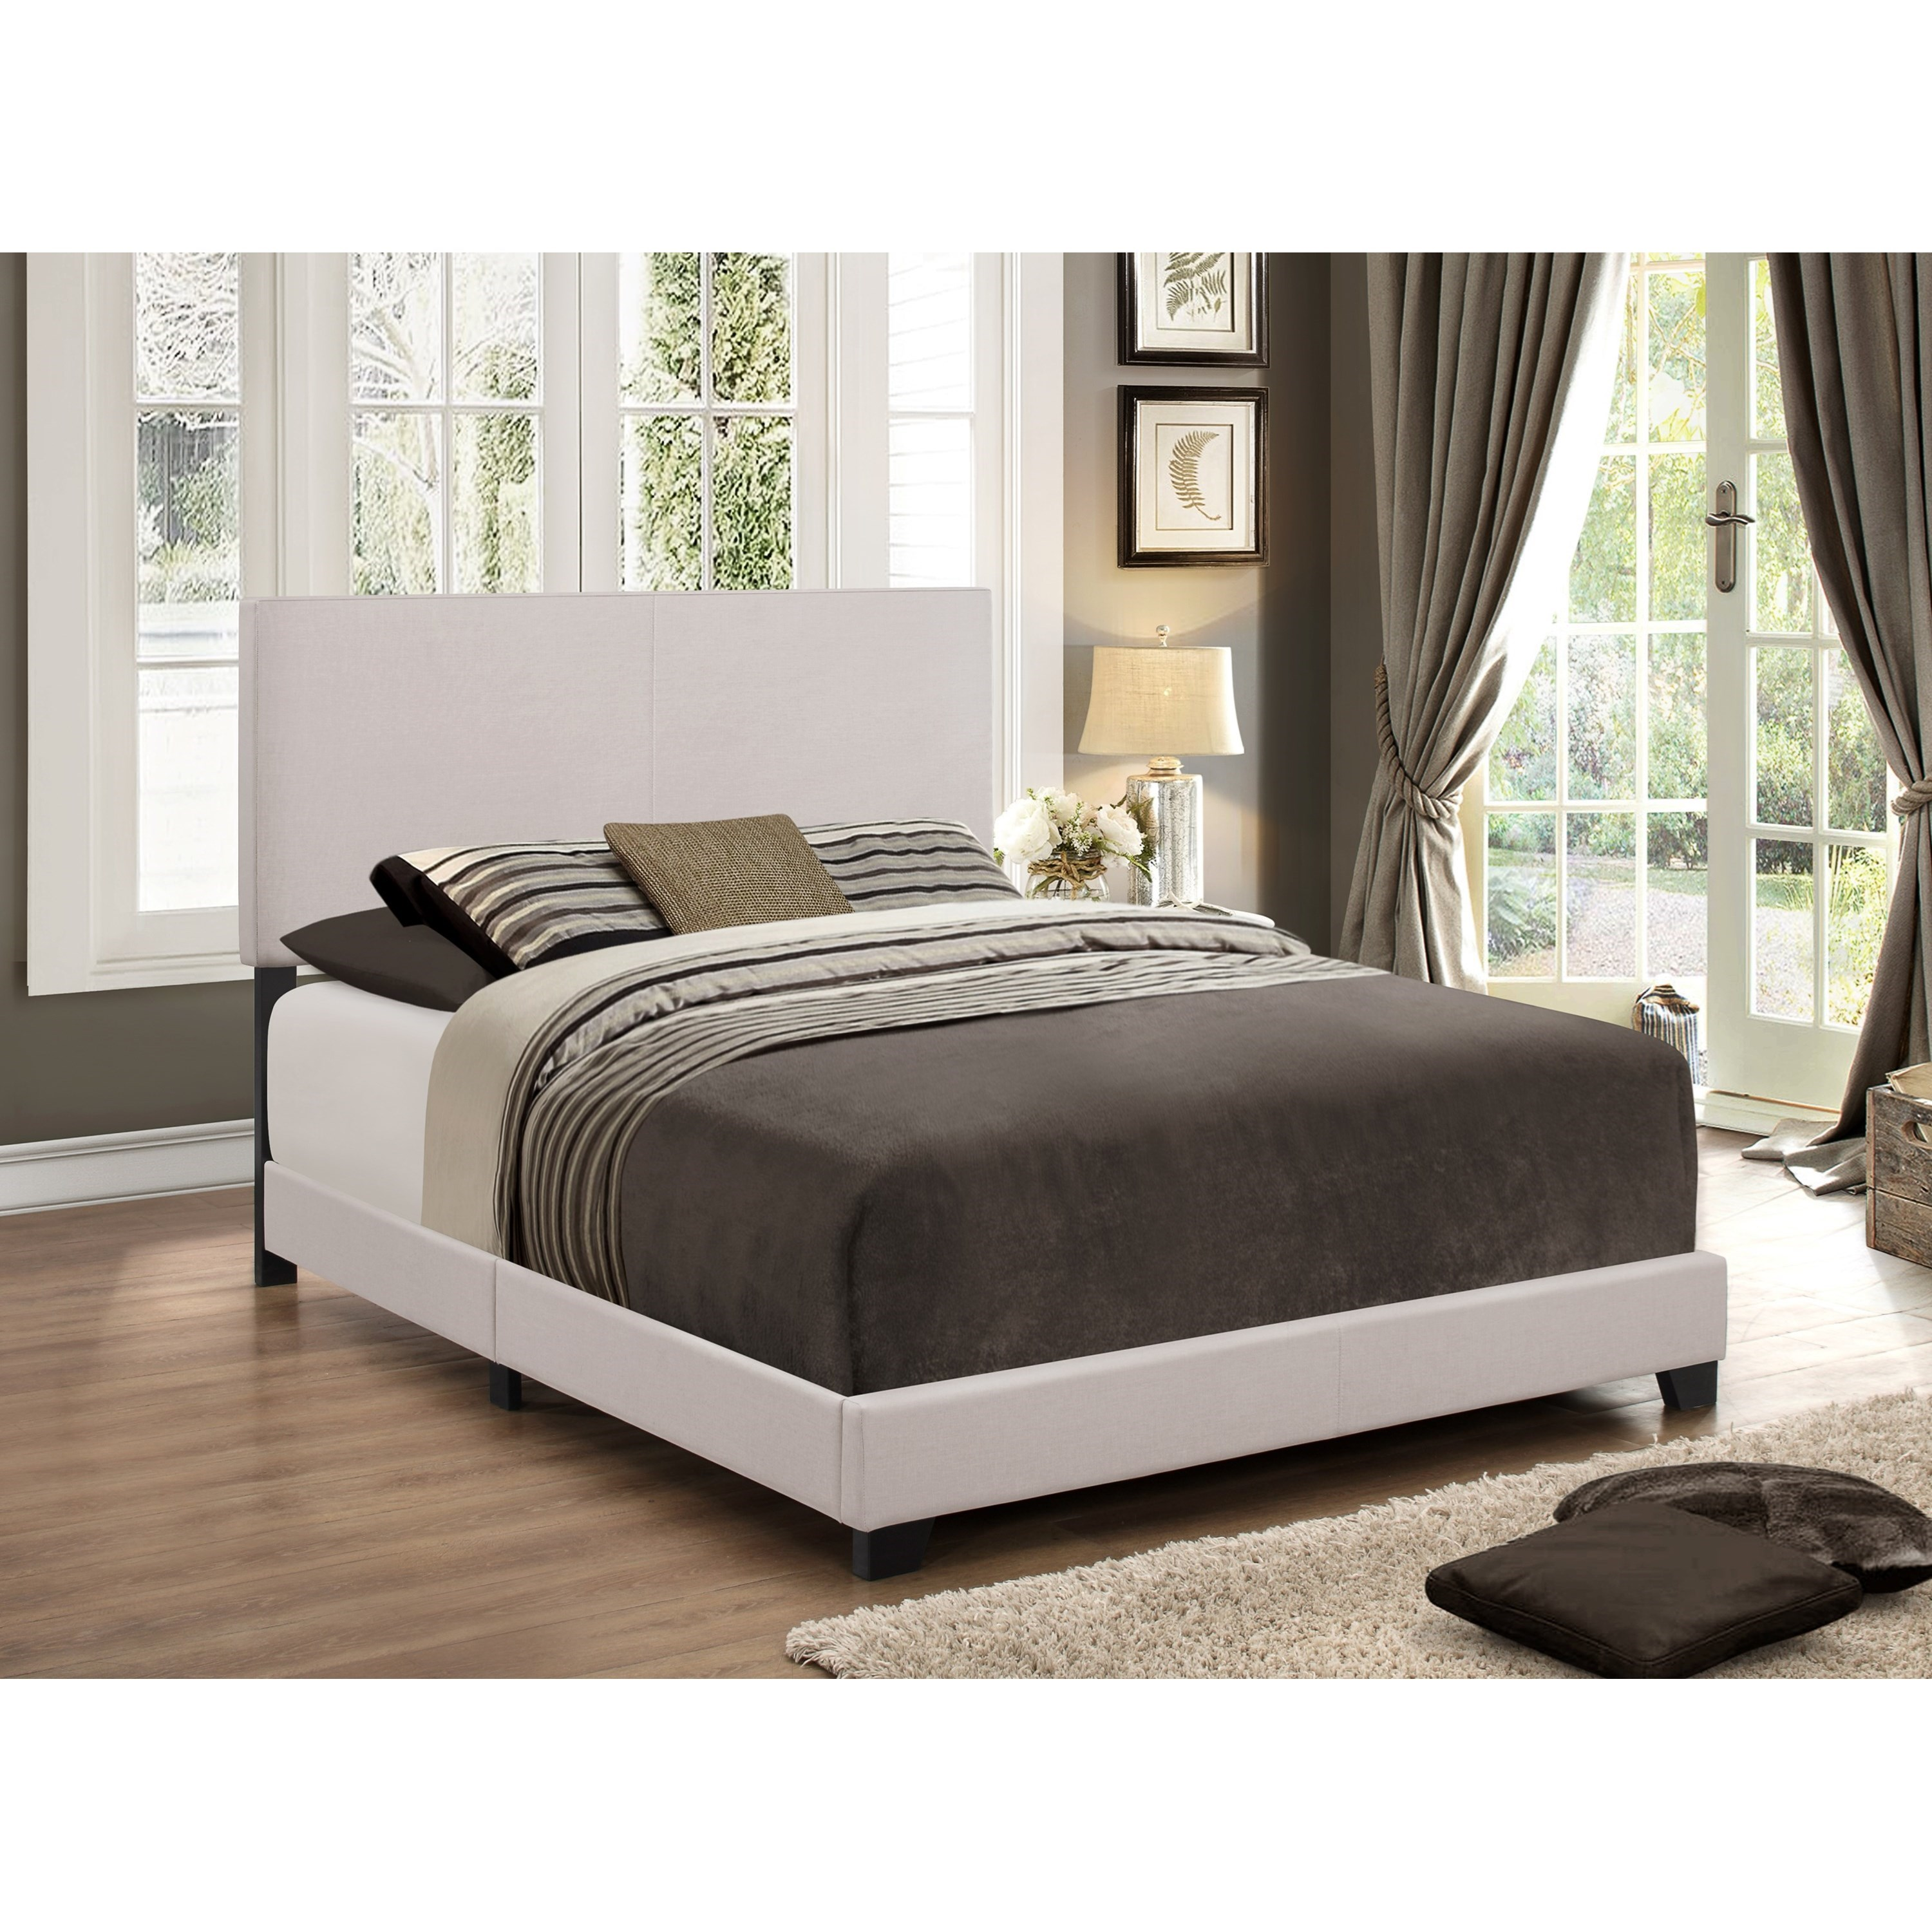 Crown Mark Erin Full Upholstered Platform Bed - Item Number: 5271KH-F